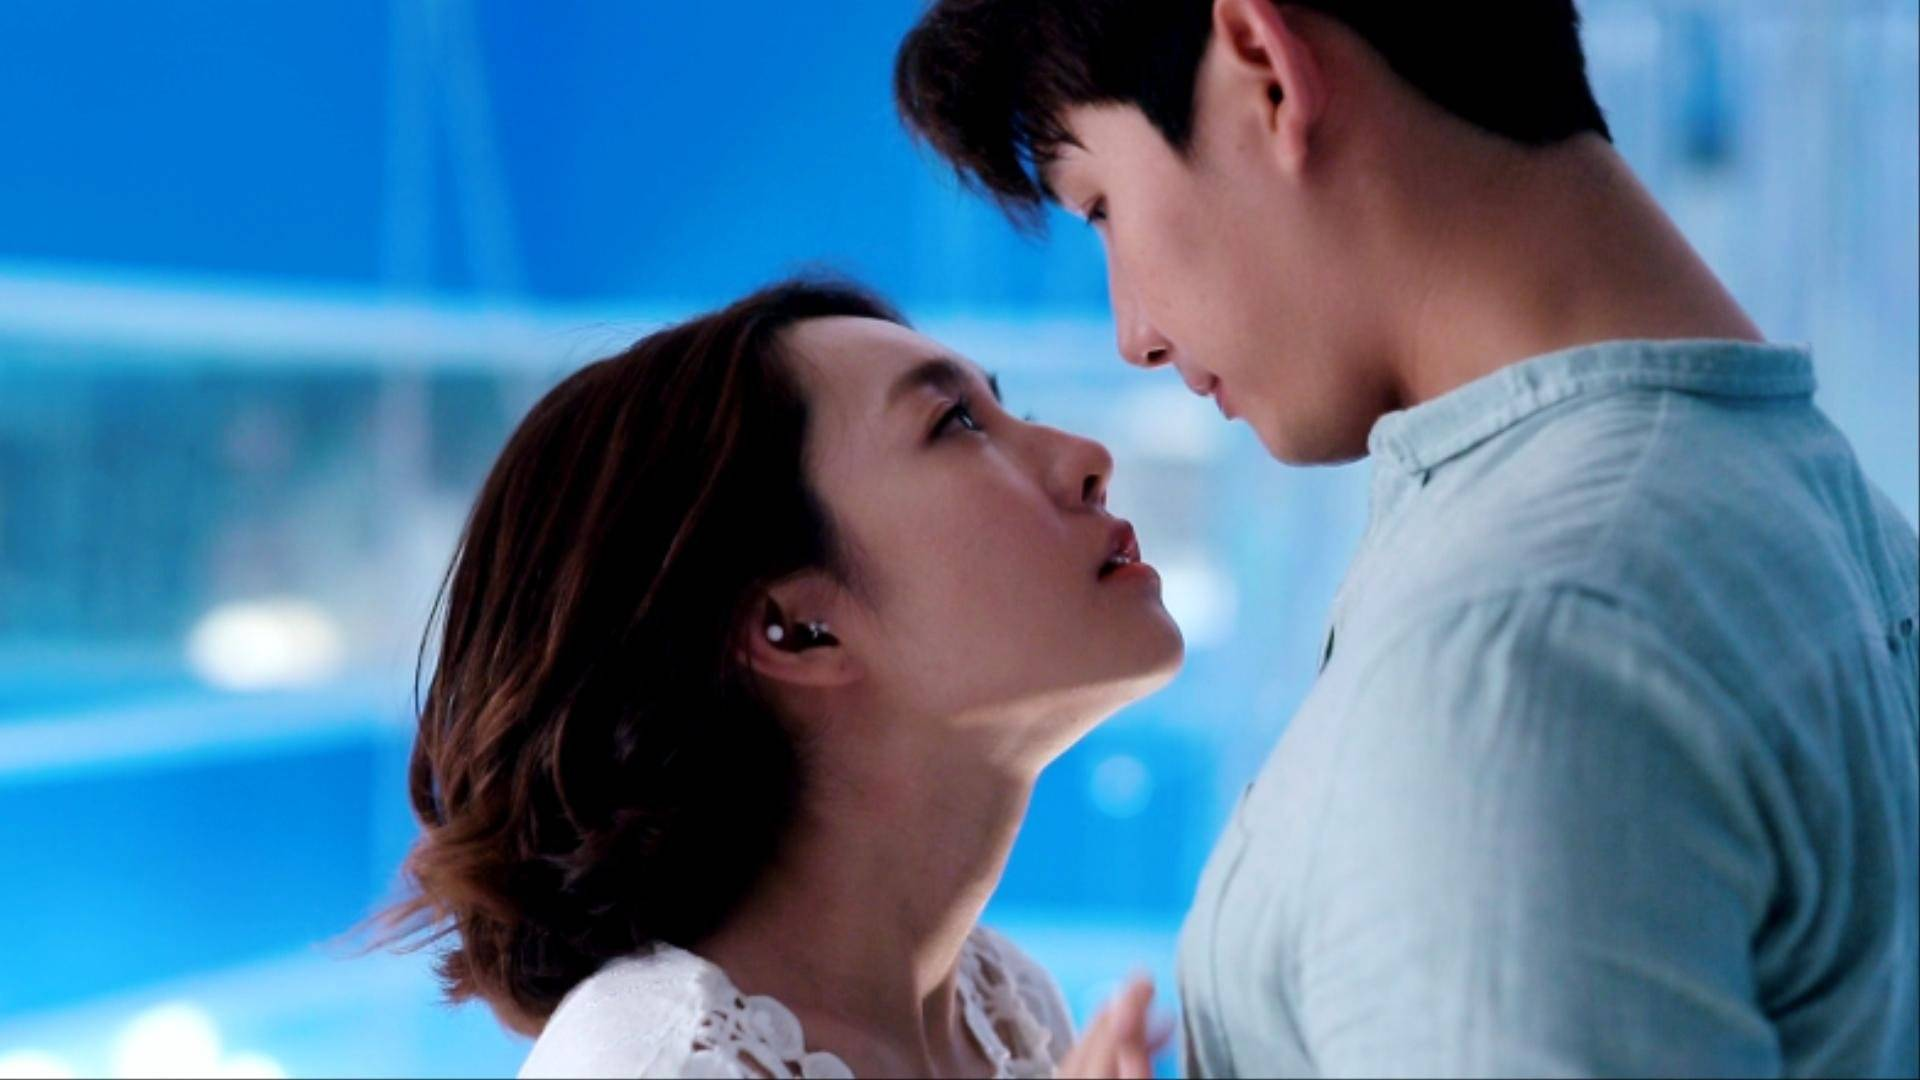 Mutual Relations (공즉시색) - Movie - Picture Gallery